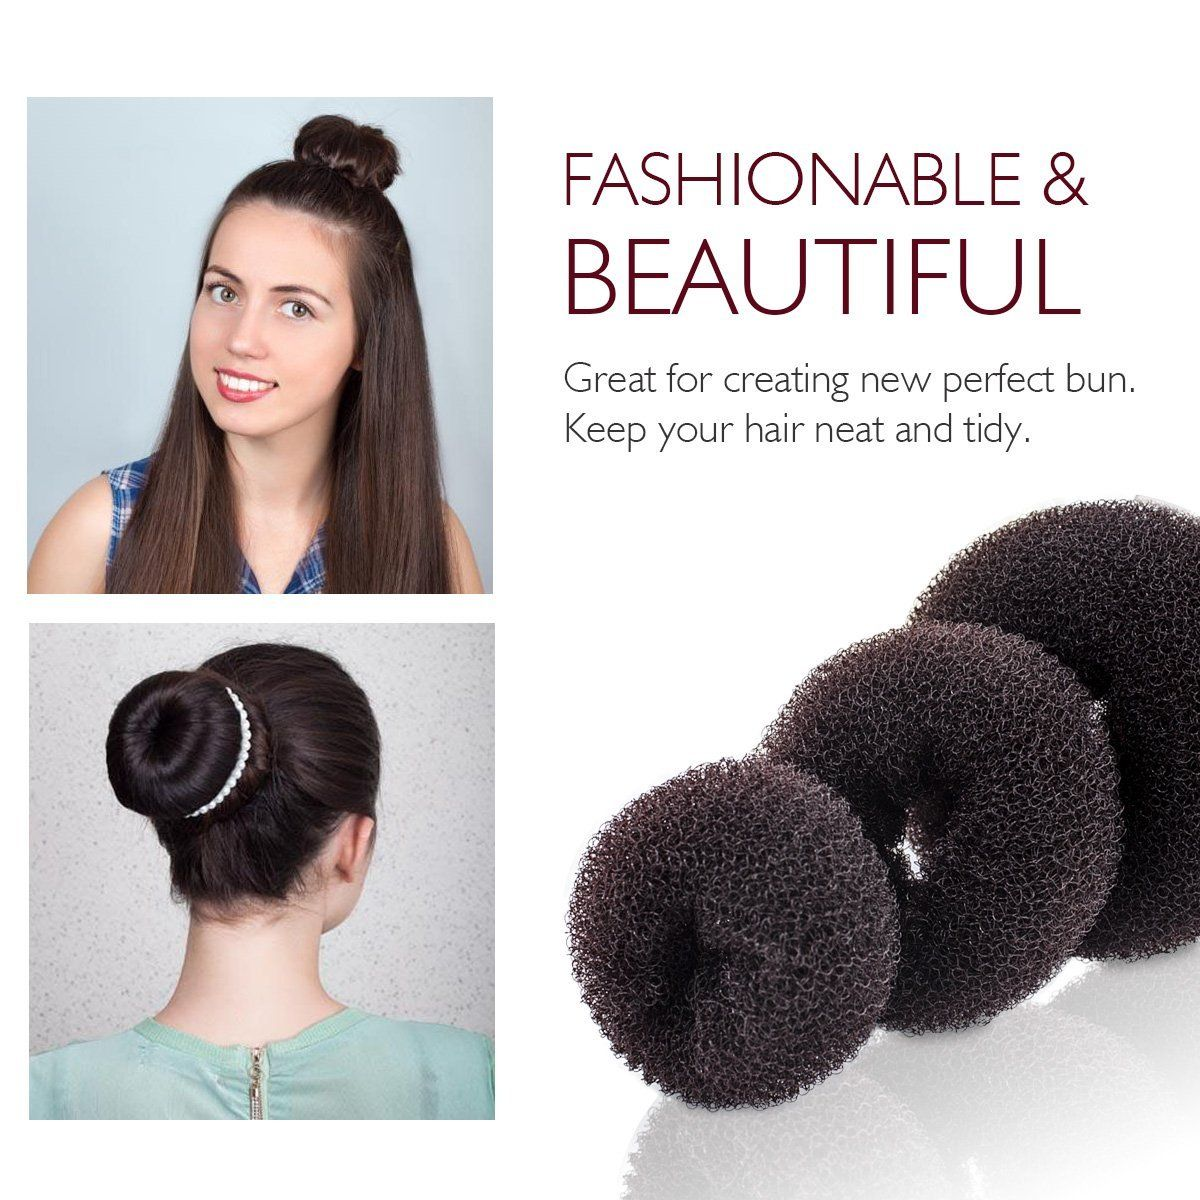 3 Pcs Magic Hair Bun Maker French Twist Donut Former Ring Round Buns Hairstyle Tools Diy Doughnuts Chignon Shaper Ha Hair Bun Maker Bun Hairstyles French Twist